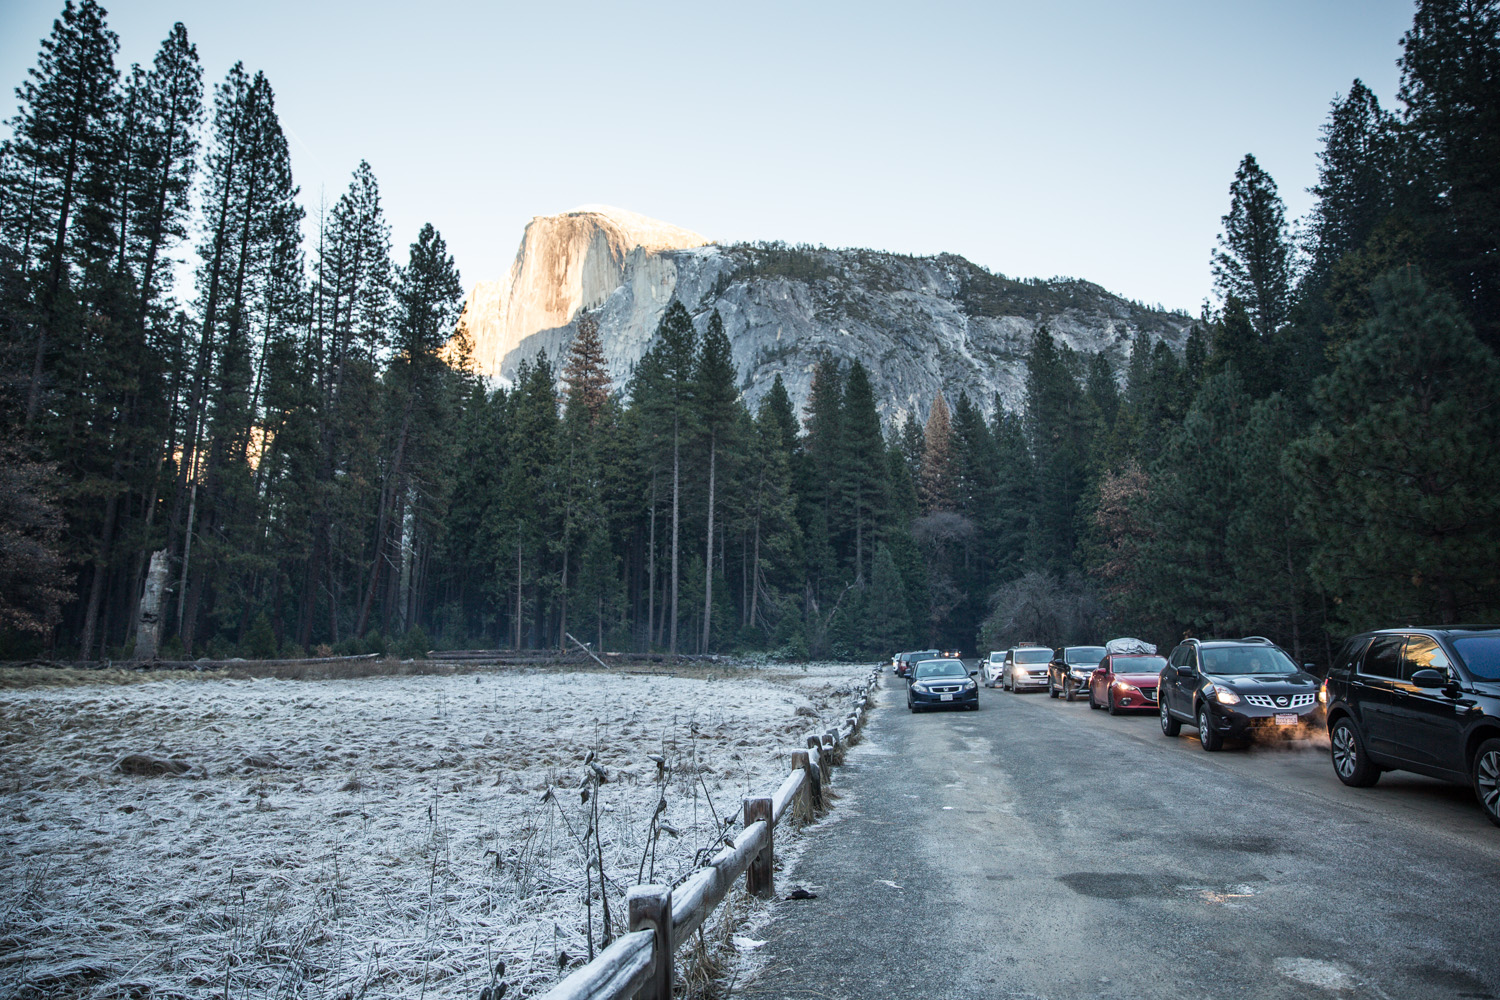 Traffic in Yosemite